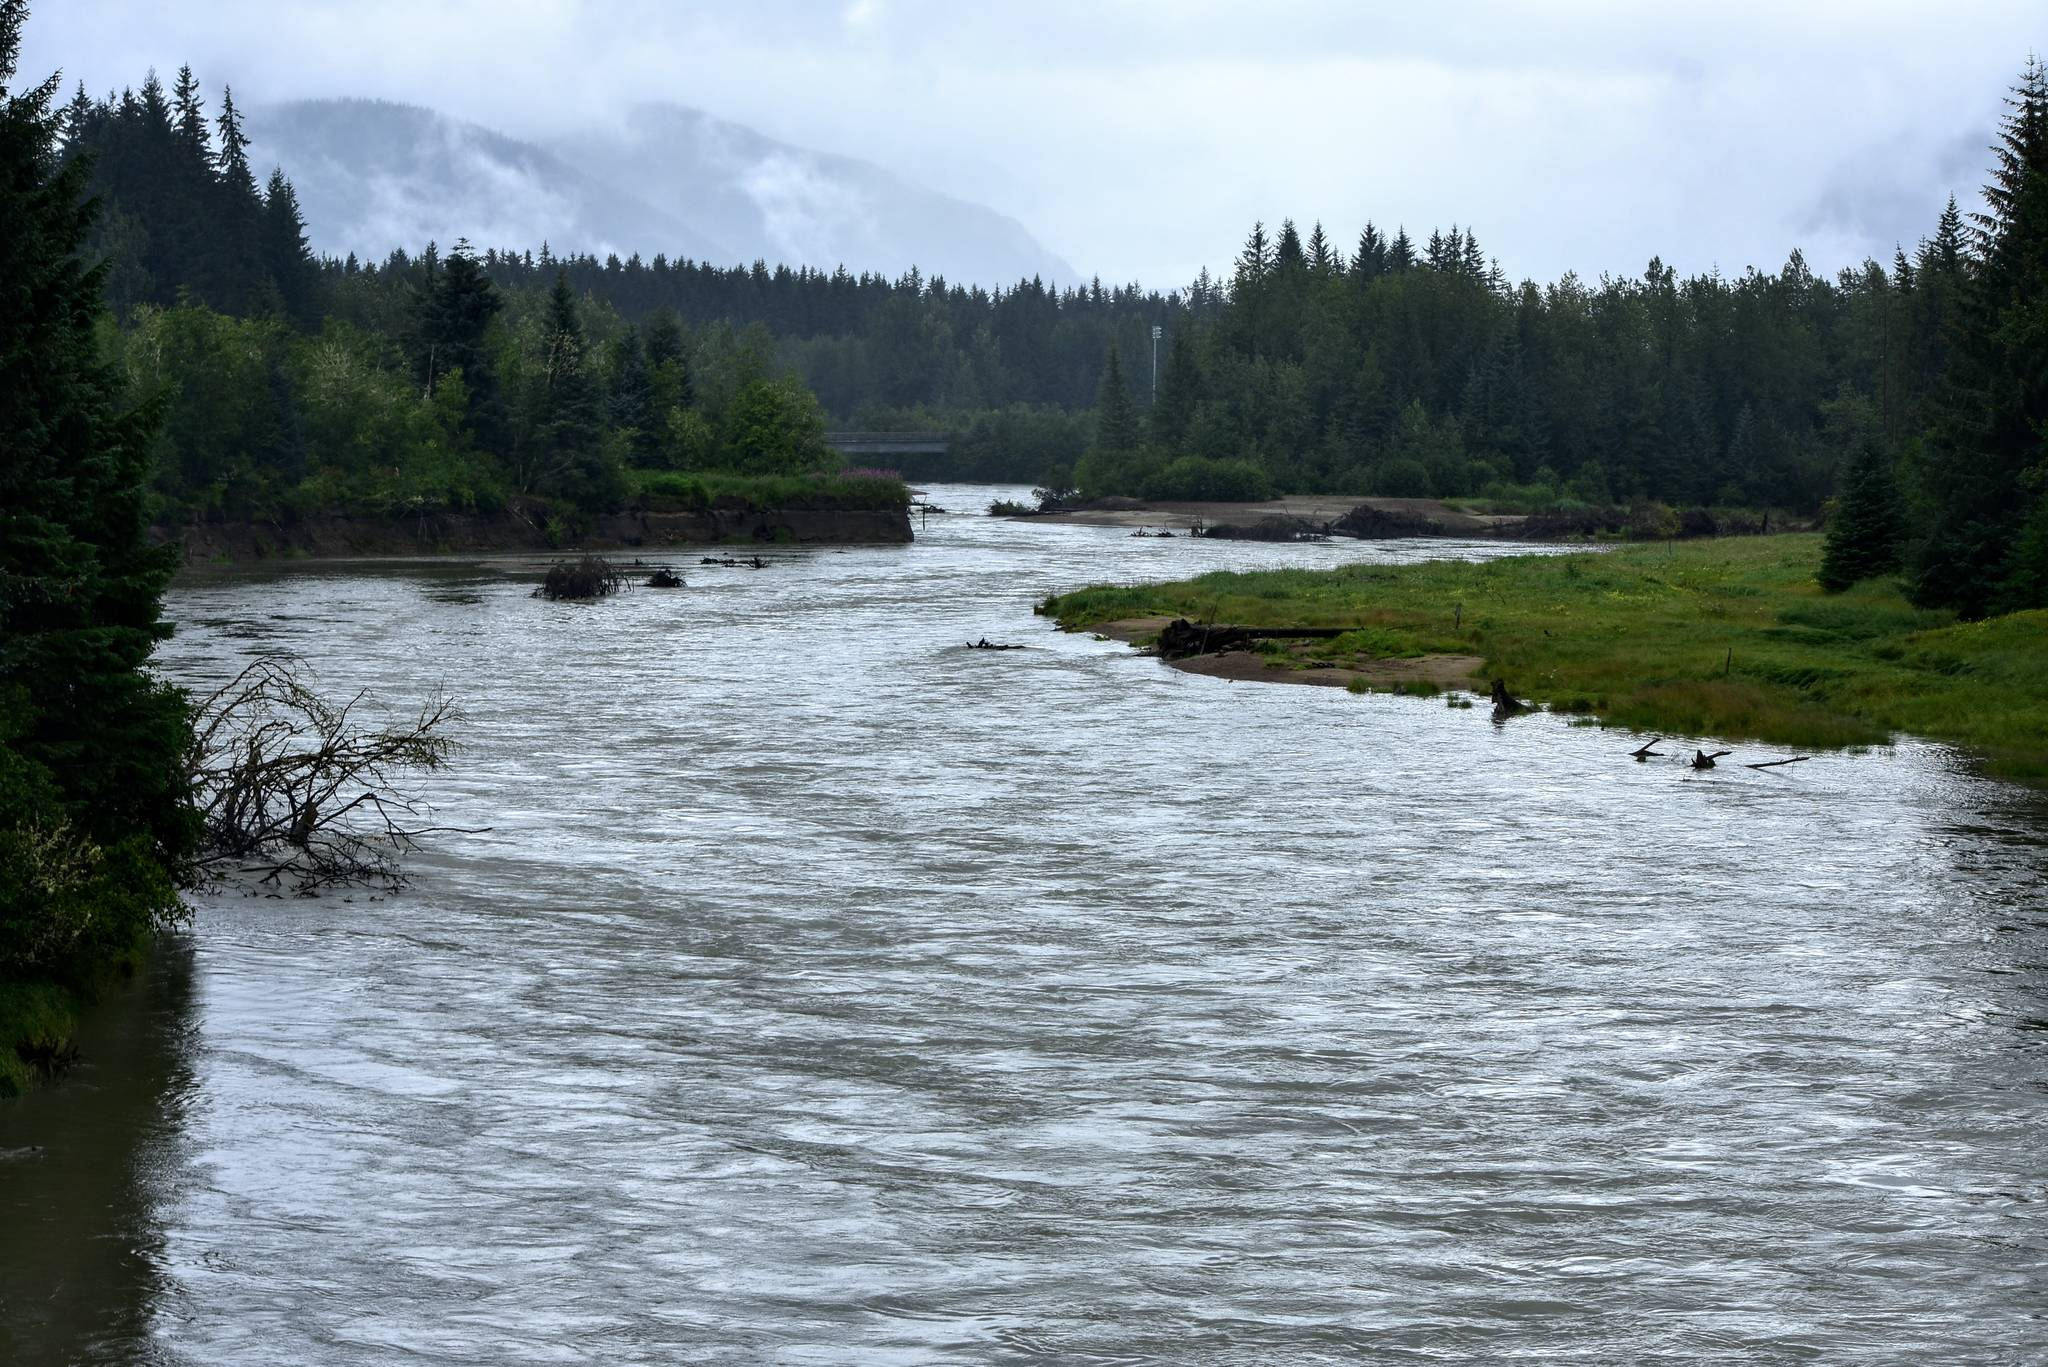 Peter Segall / Juneau Empire                                 The banks of the Mendenhall River were high on Sunday, July 26, 2020. National Weather Service is monitoring the river's potentially dangerous water level rise.